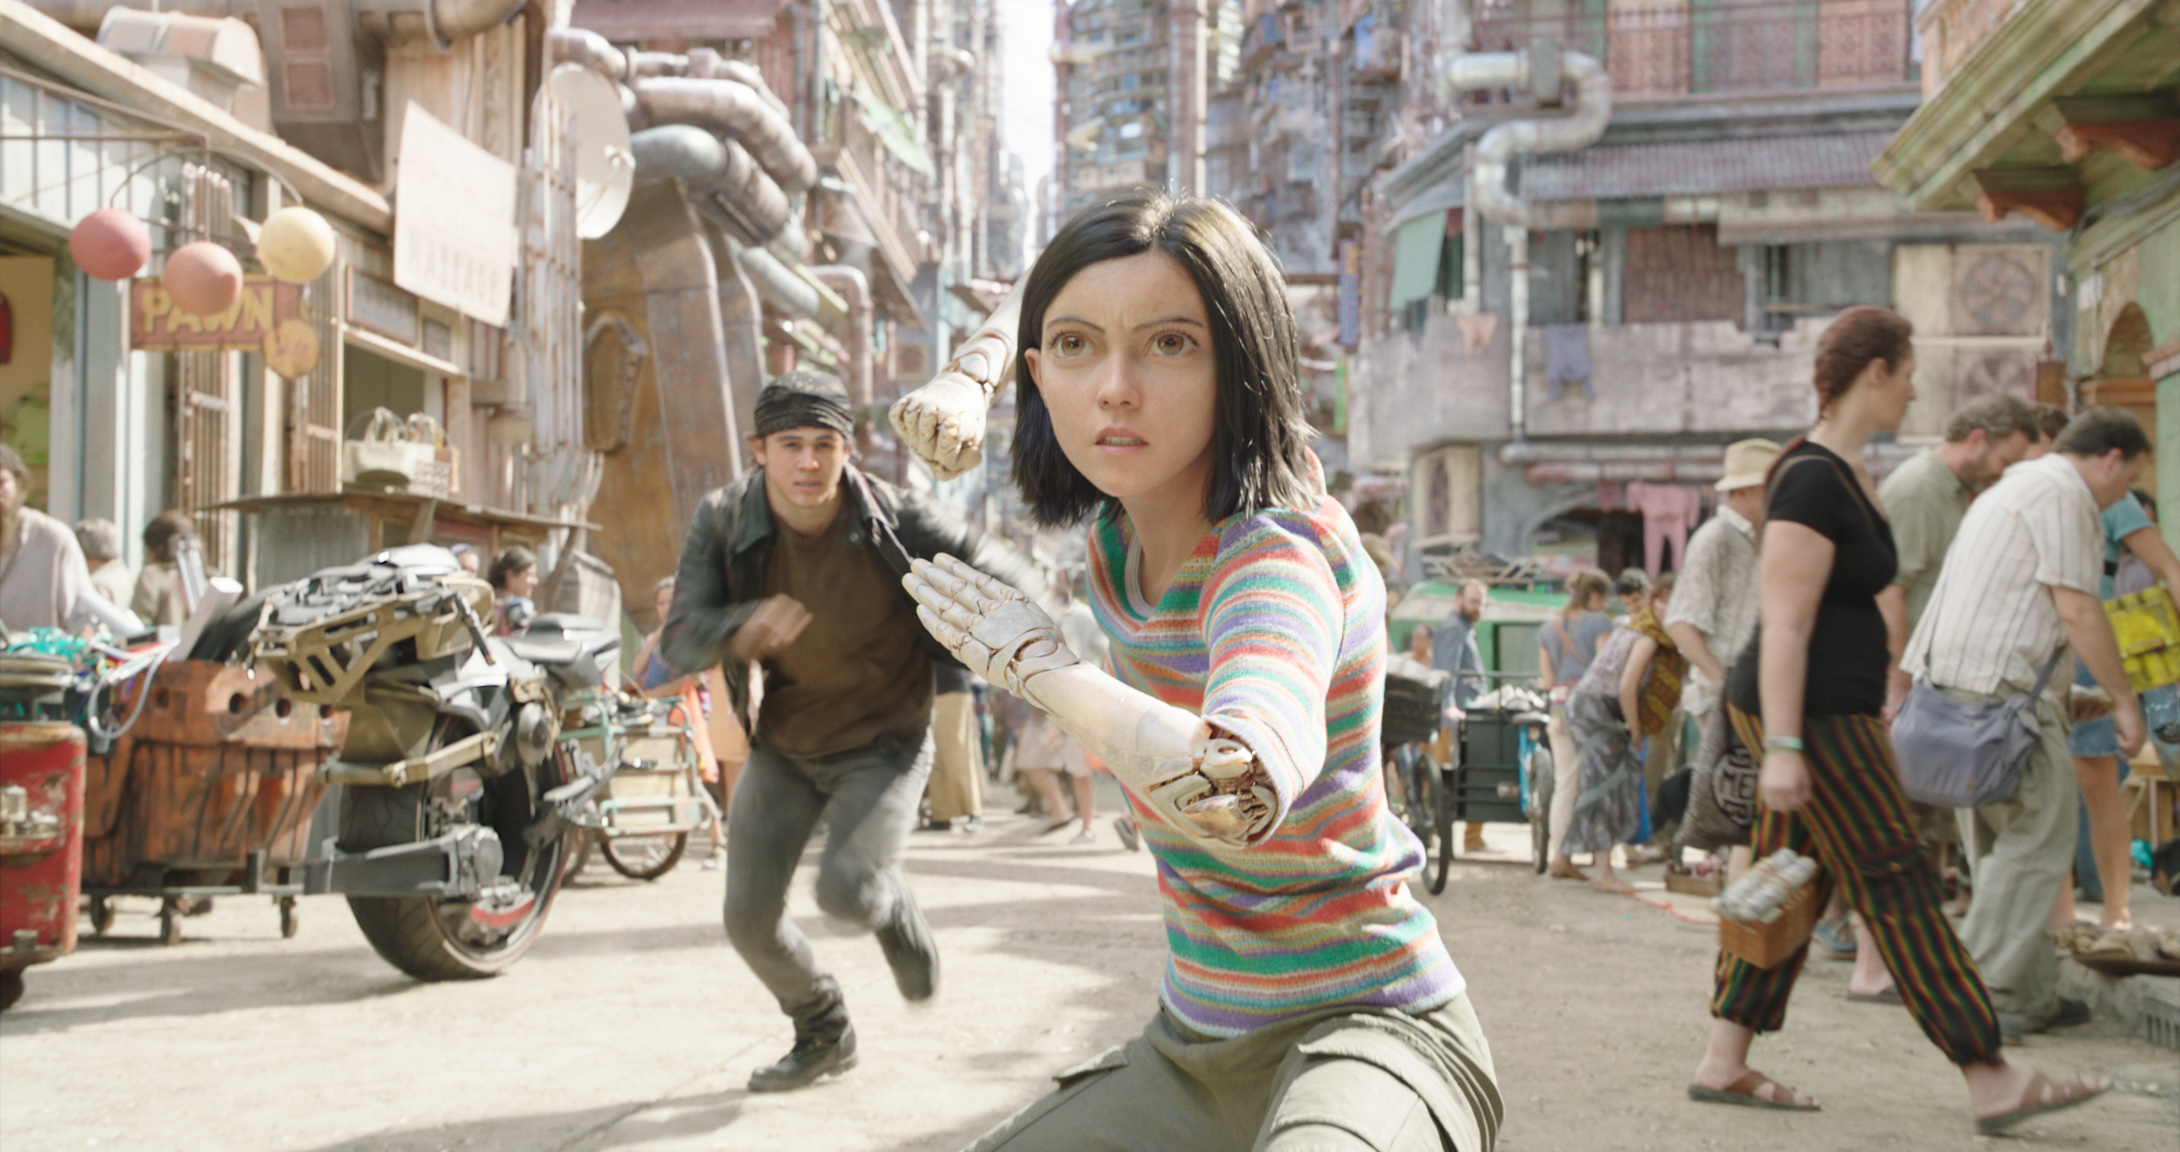 Keean Johnson (left) and Rosa Salazar (centre) in Twentieth Century Fox's ALITA: BATTLE ANGEL. Photo Credit: Courtesy Twentieth Century Fox.